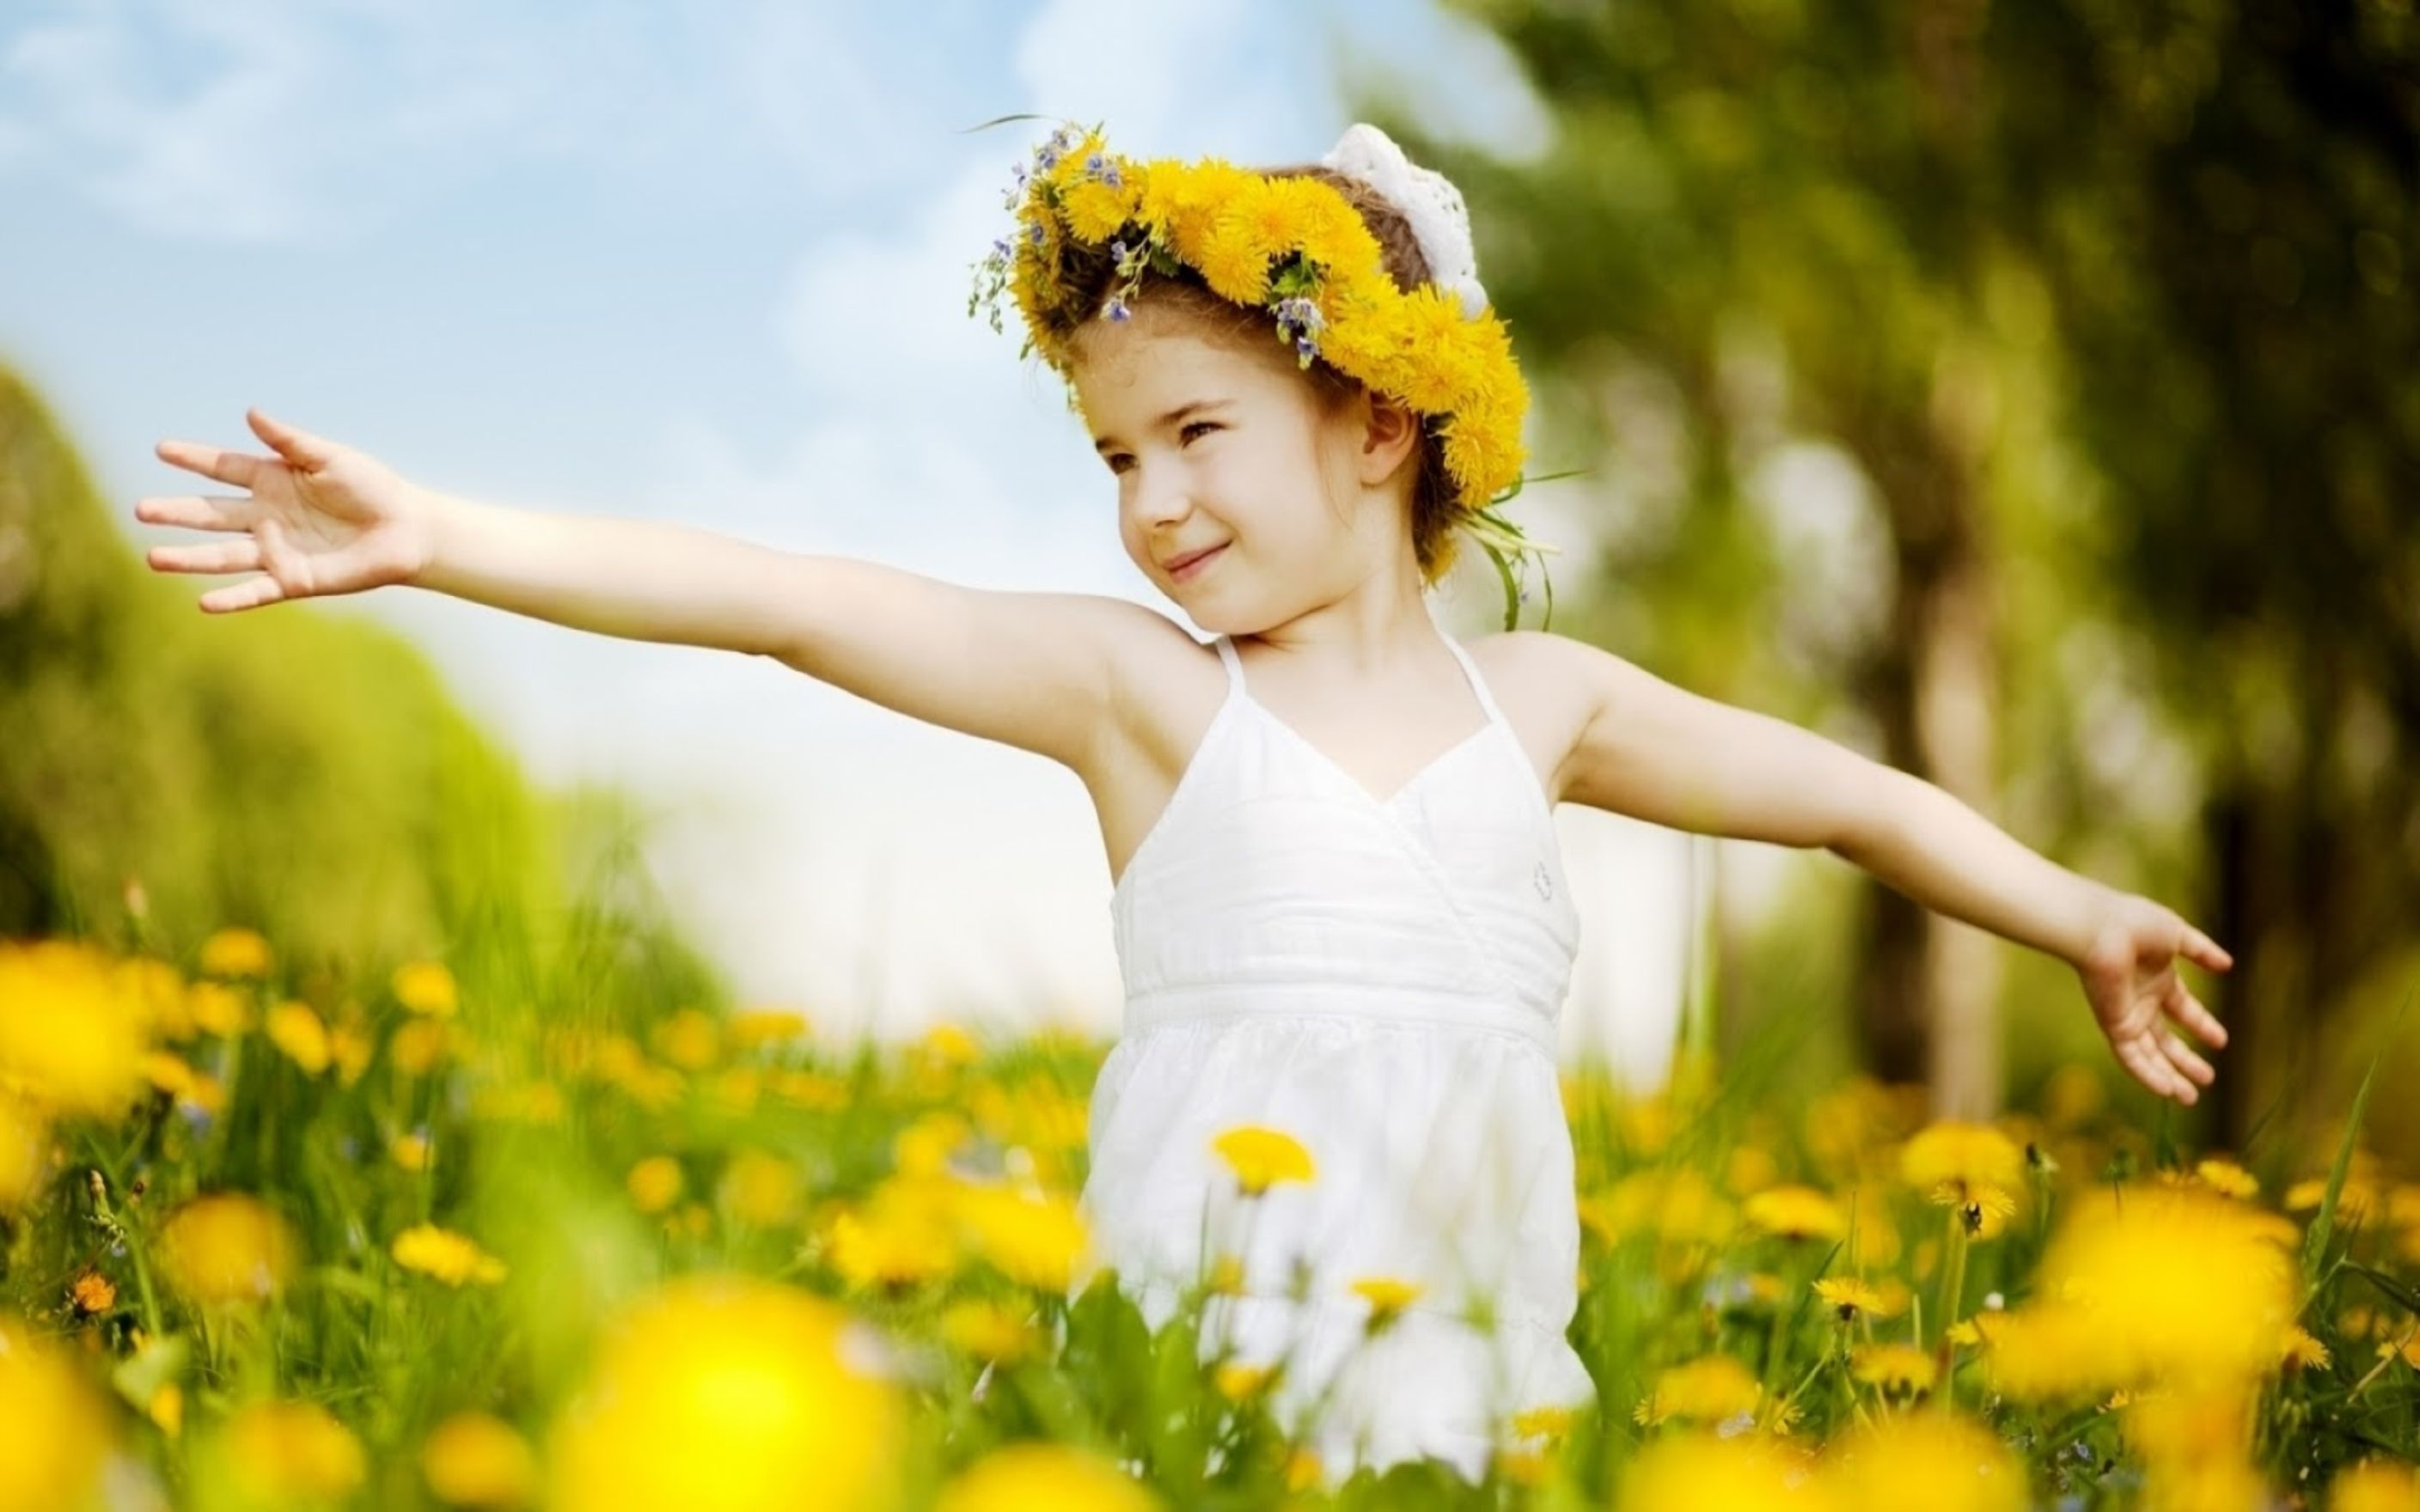 Download free HD Girl Dancing In Field Of Yellow Flowers Wallpaper, image